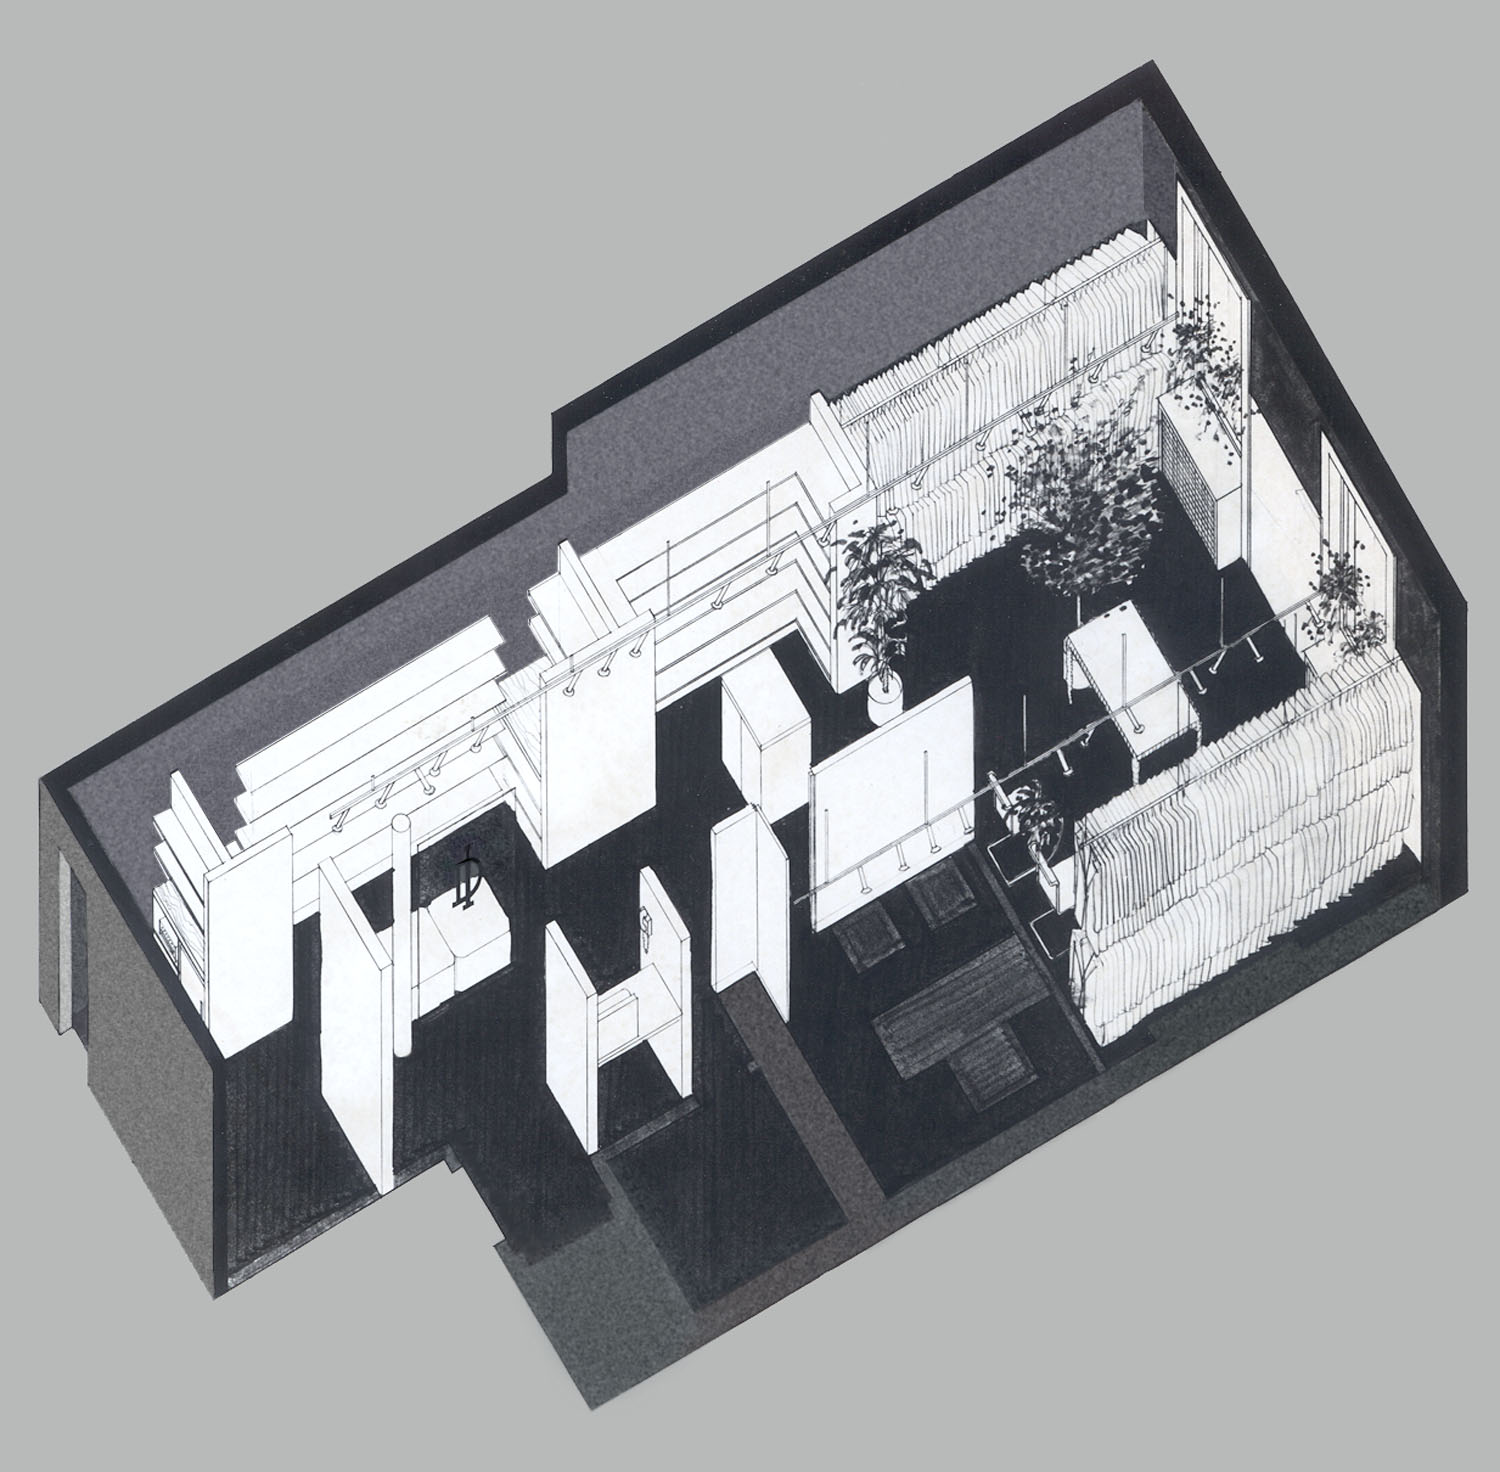 Piero Dimtri Showroom Axonometric Drawing